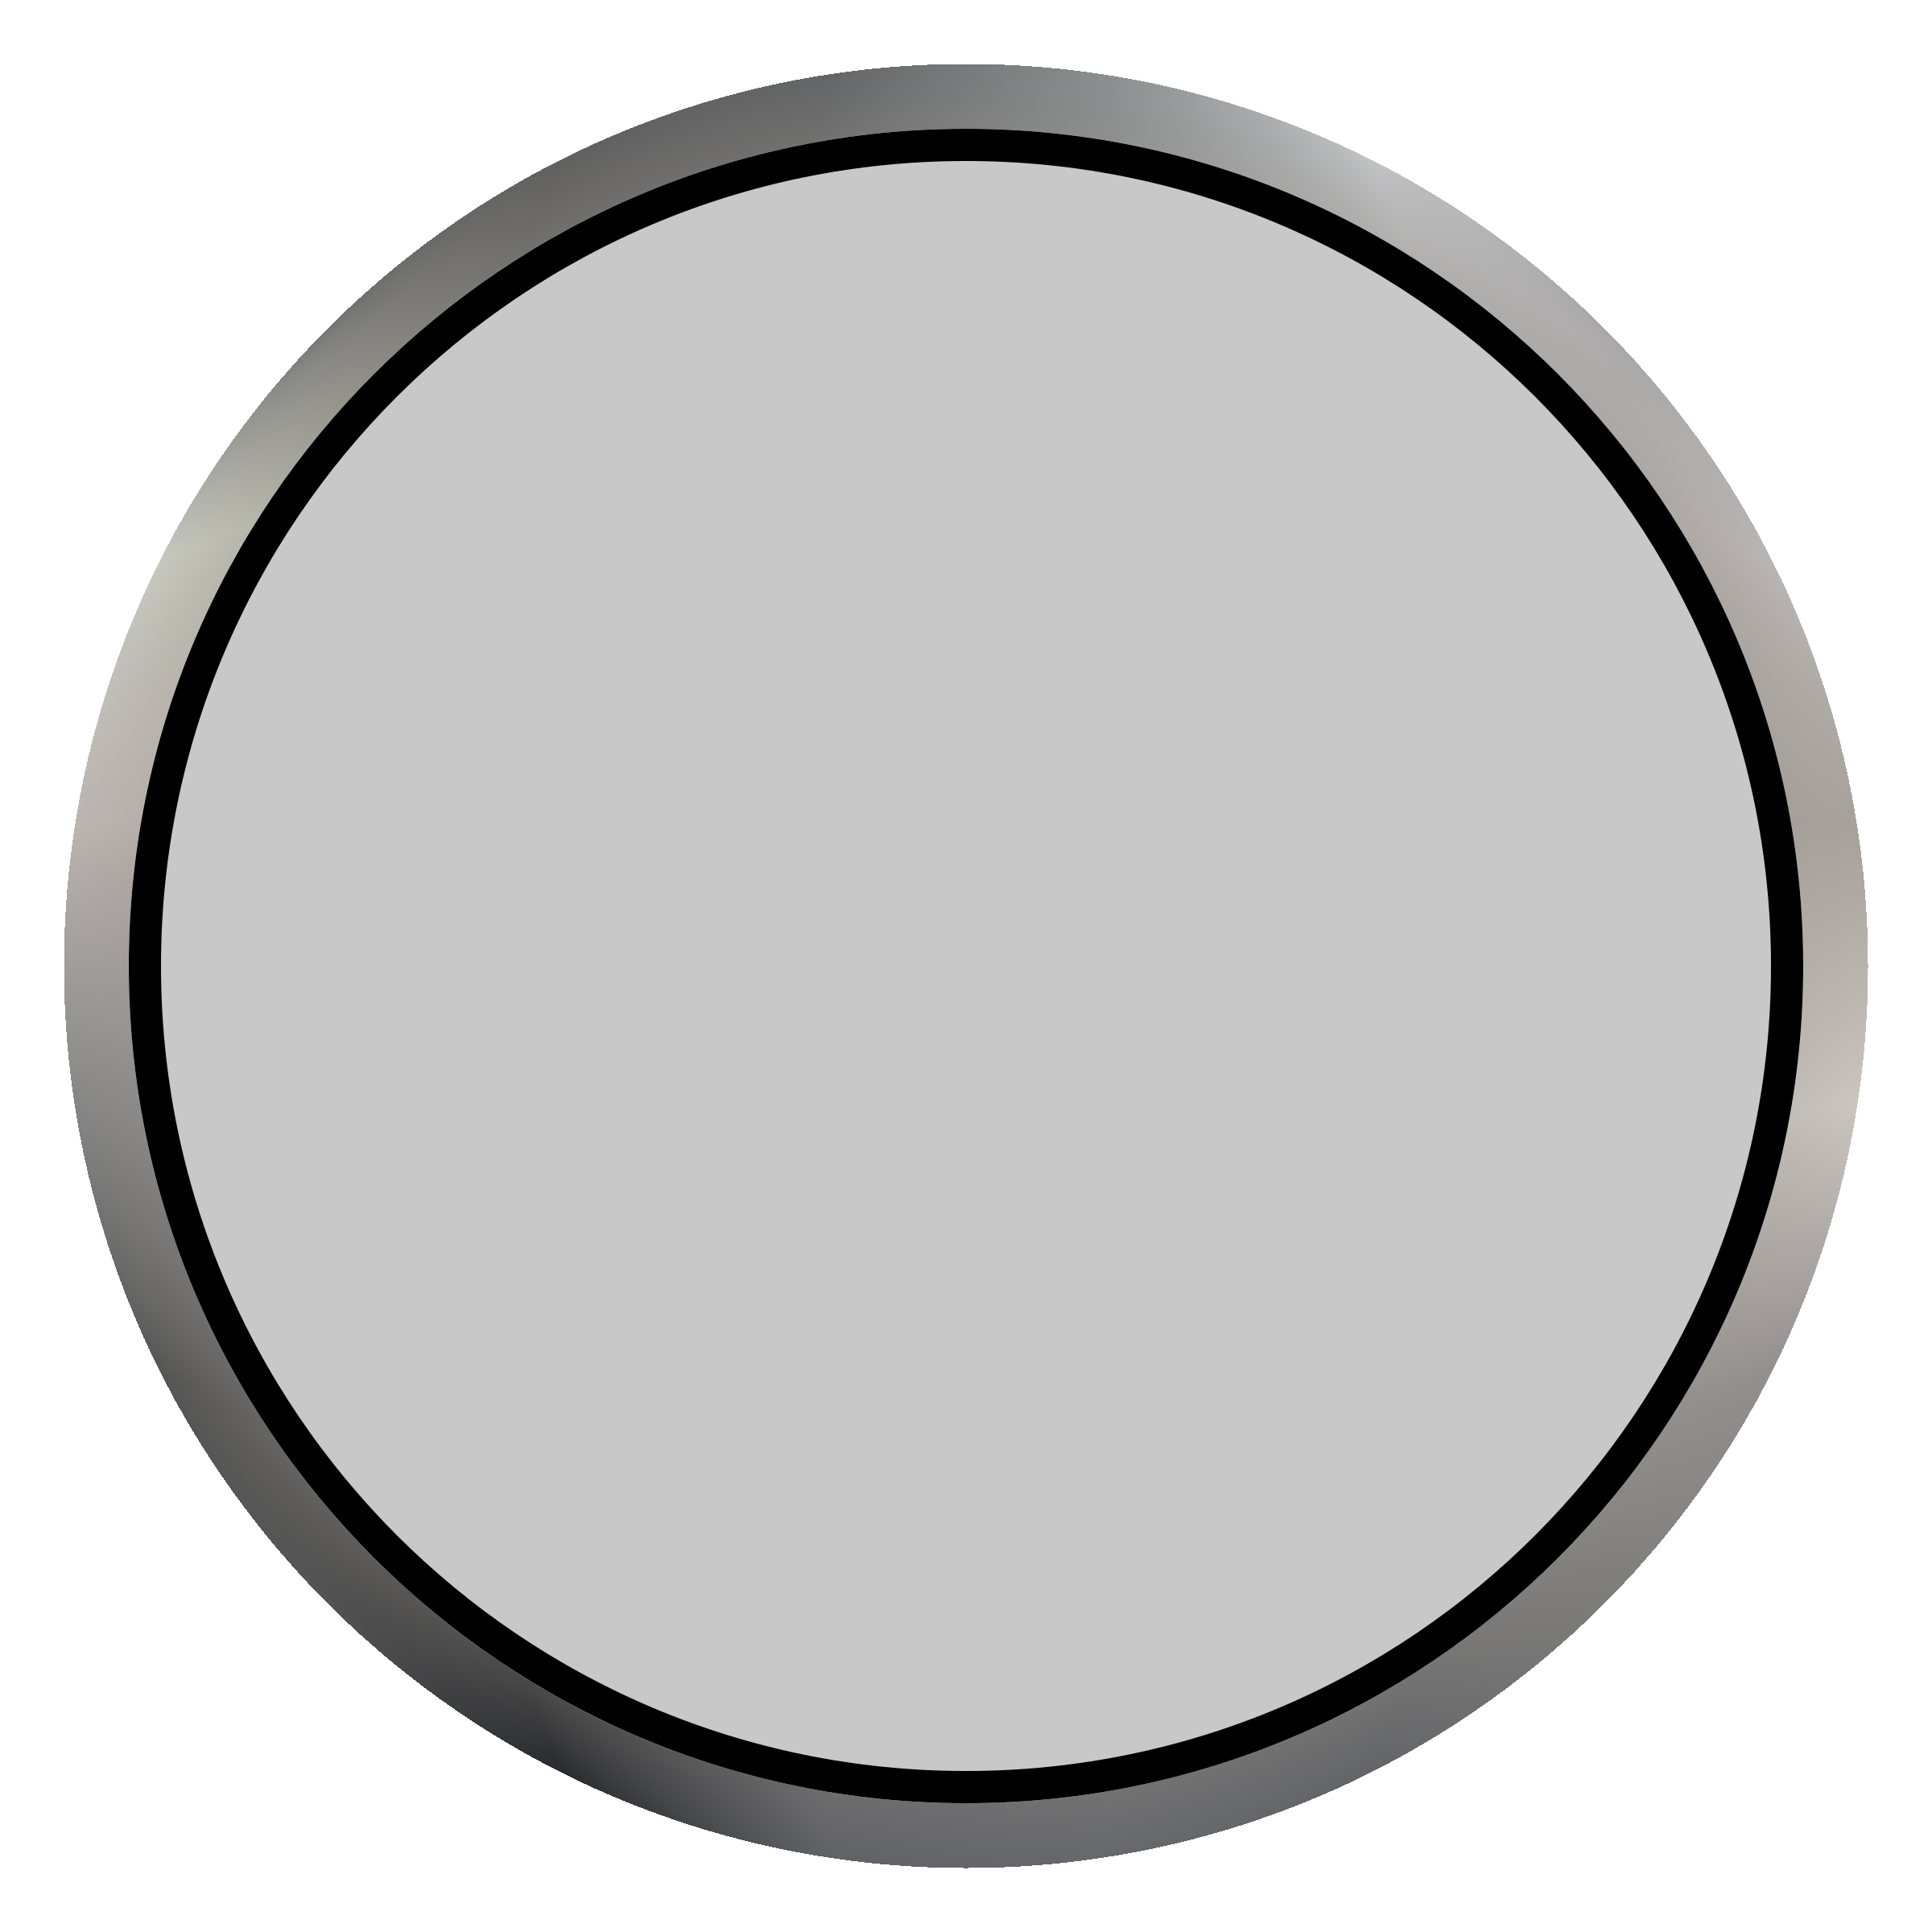 Indistrial white big image. Button clipart push button